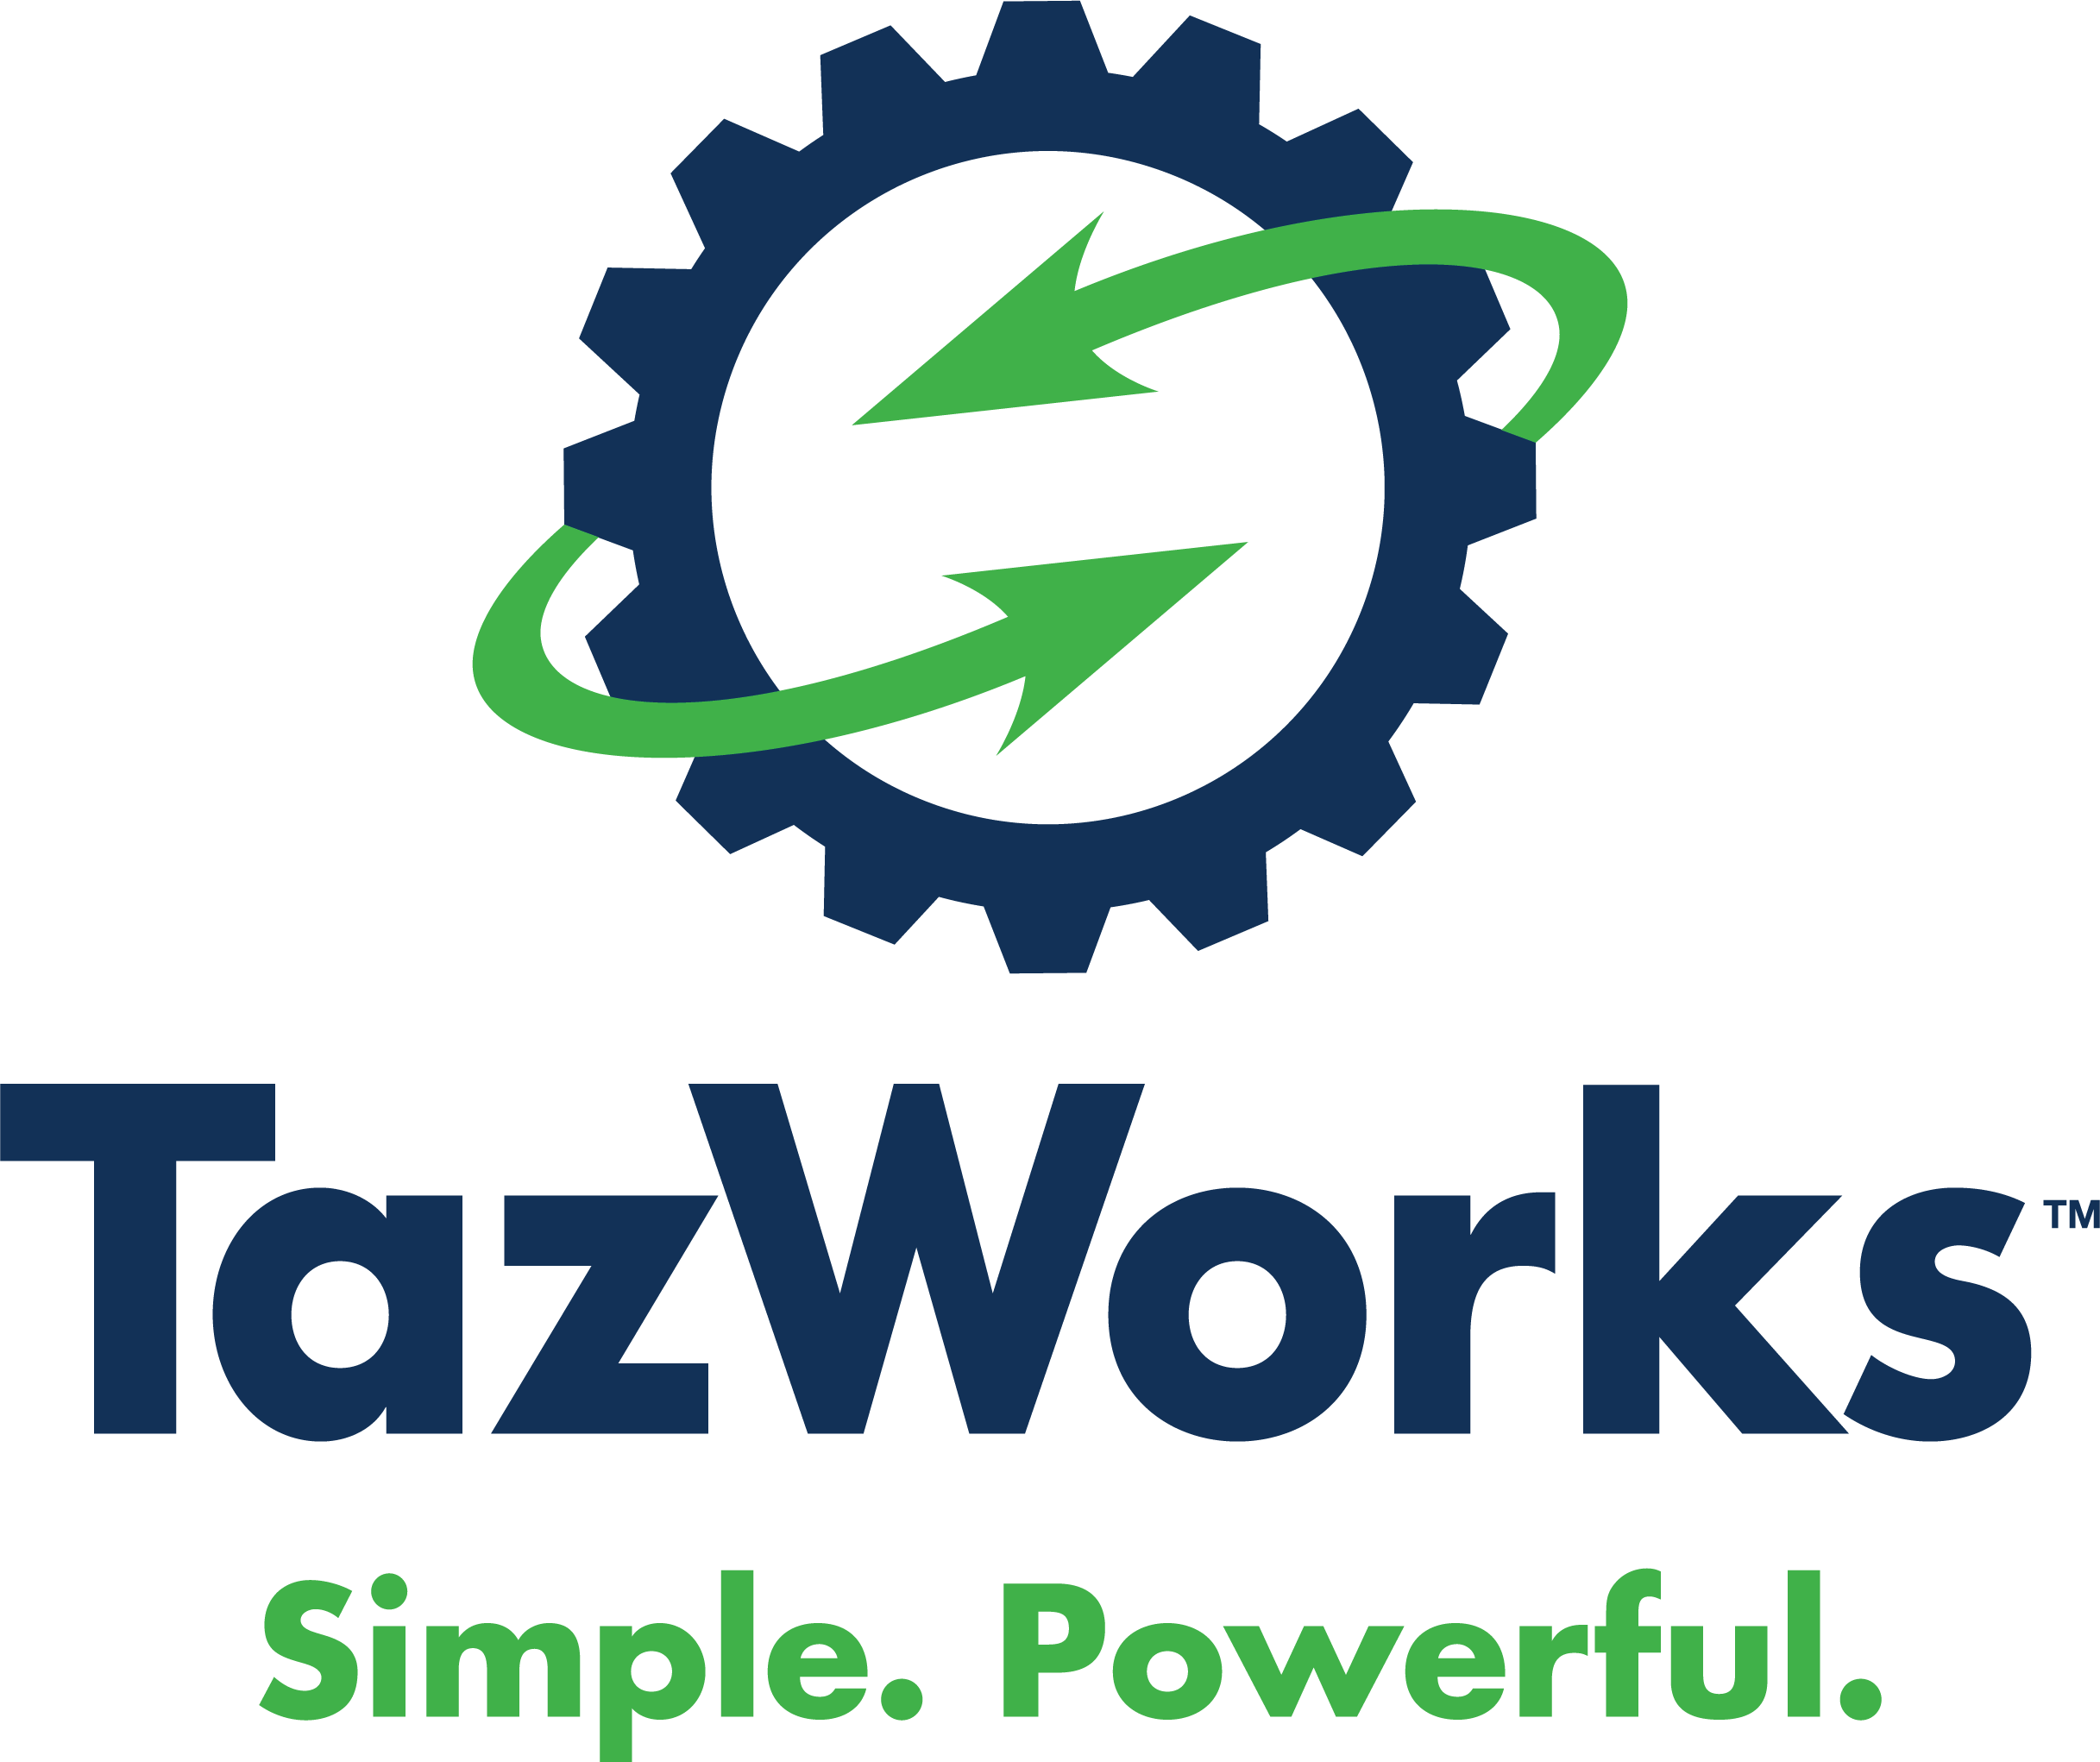 TazWorks Announces Hiring of New Product Manager